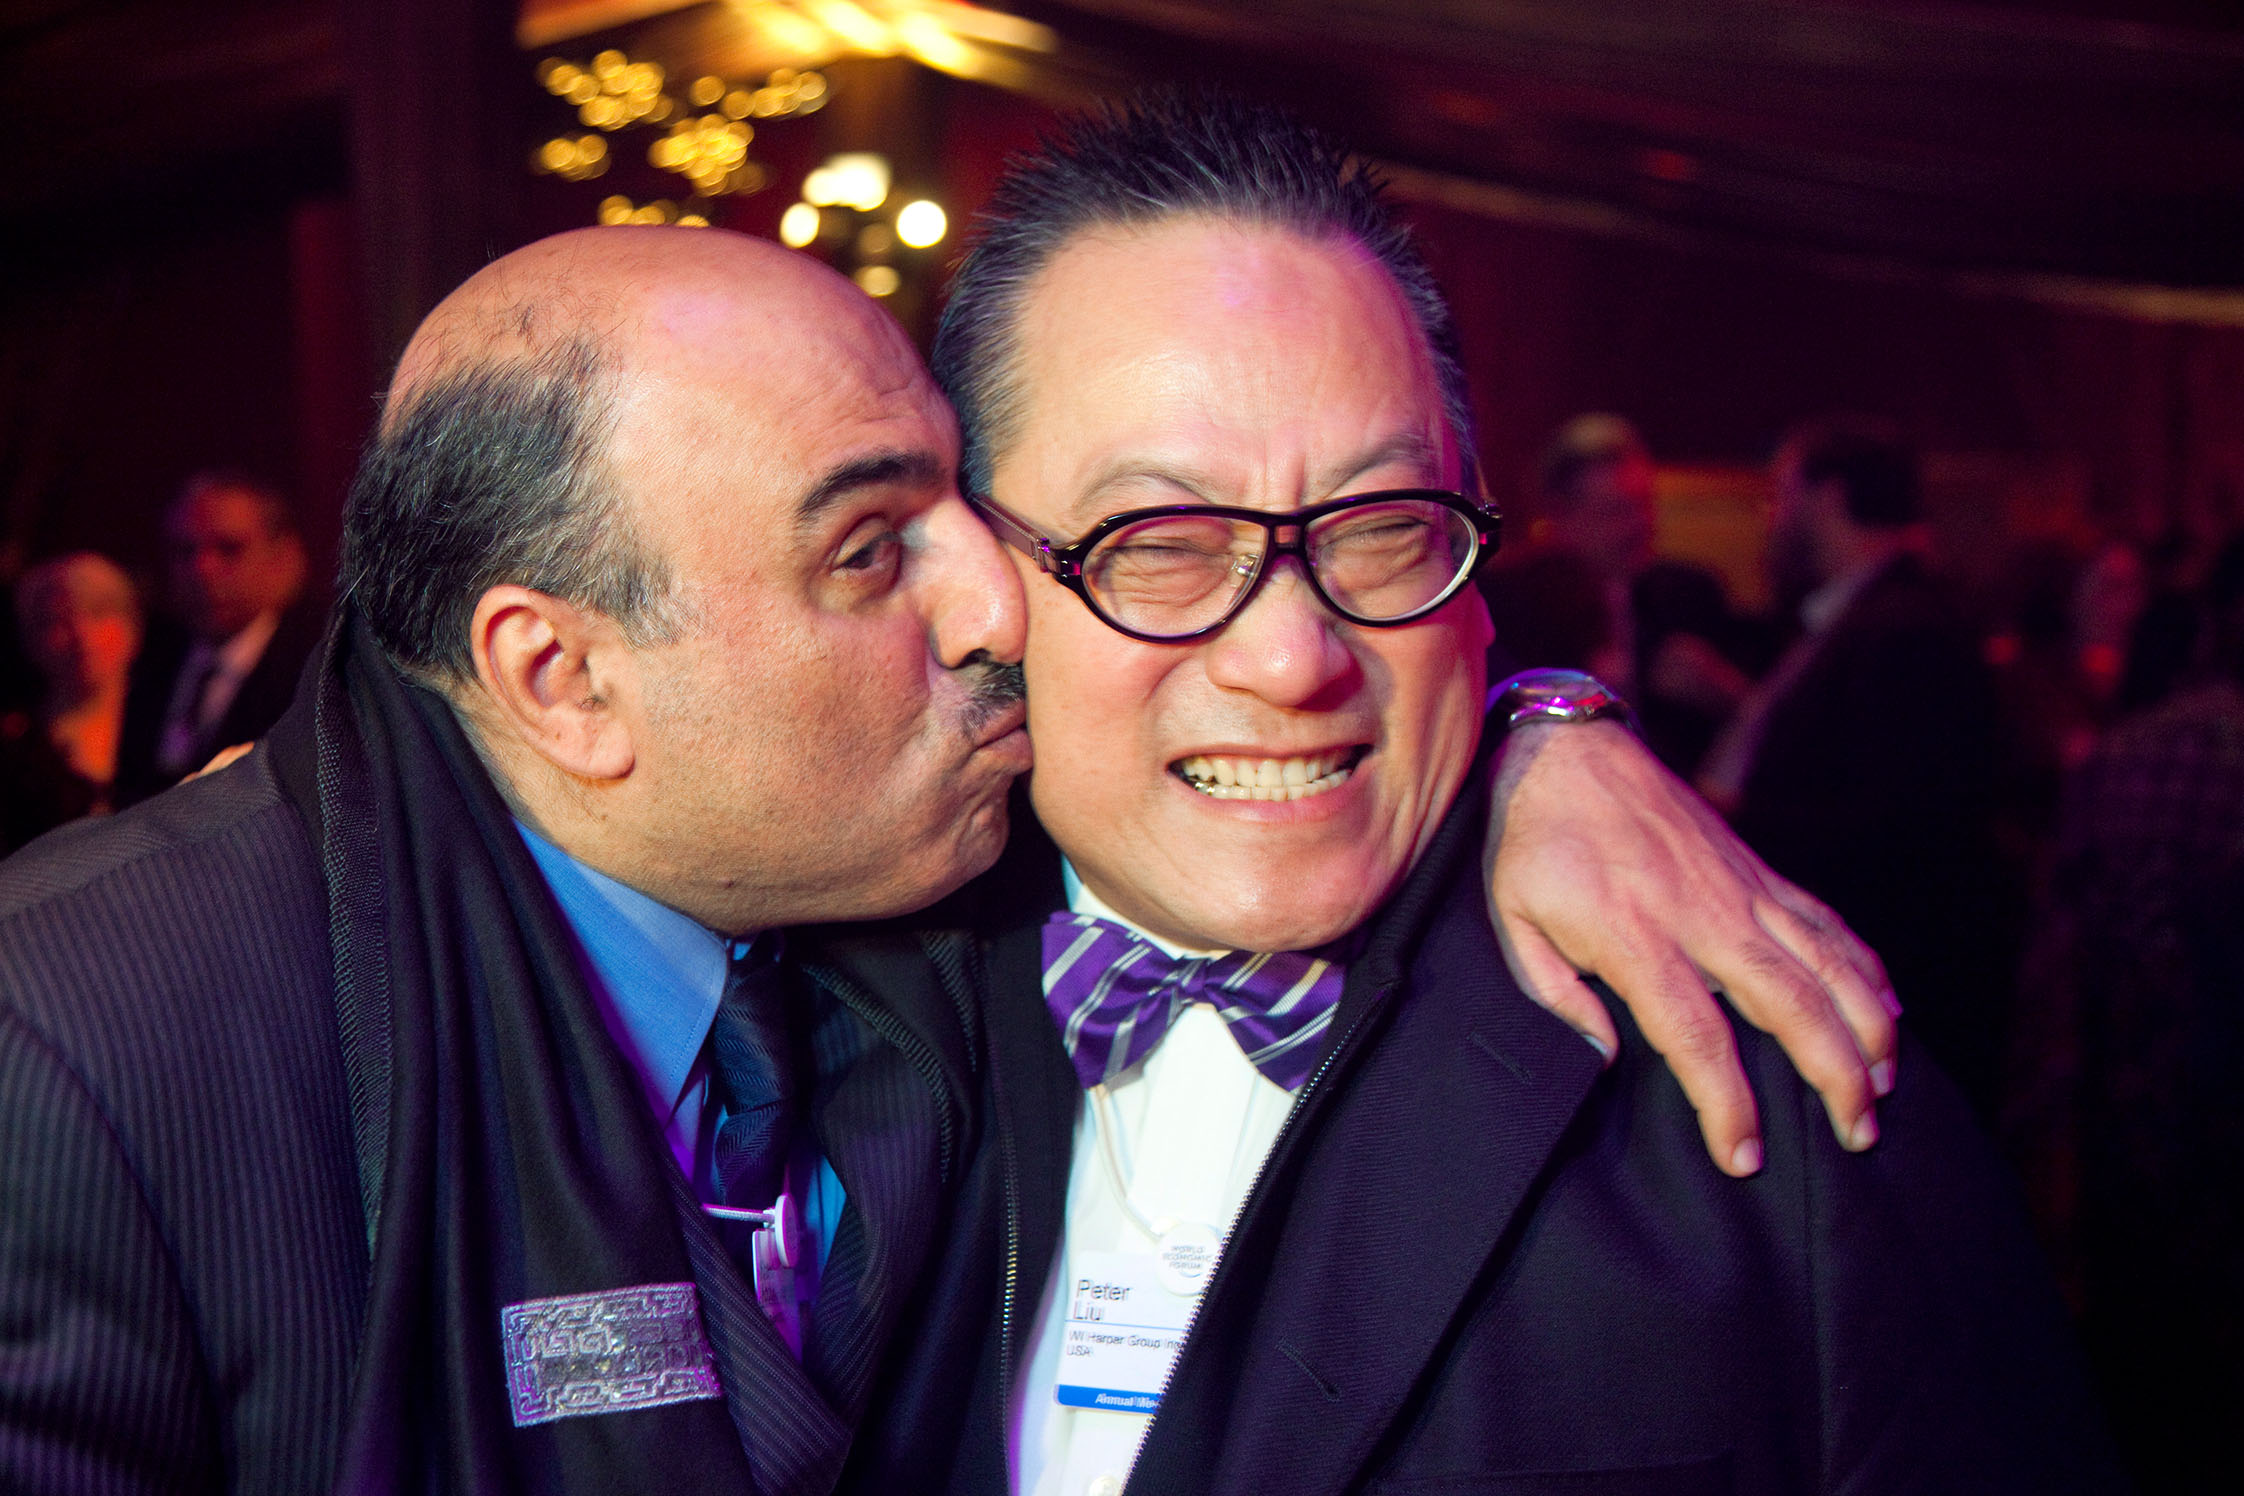 Moroccan Cultural Soirée.  Khalid ABDULLA-JANAHI, Chairman, Ithmaar Bank B.S.C., Bahrain, kissing Peter LIU, Co-Founder and Chairman, WI Harper Group Inc., USA.